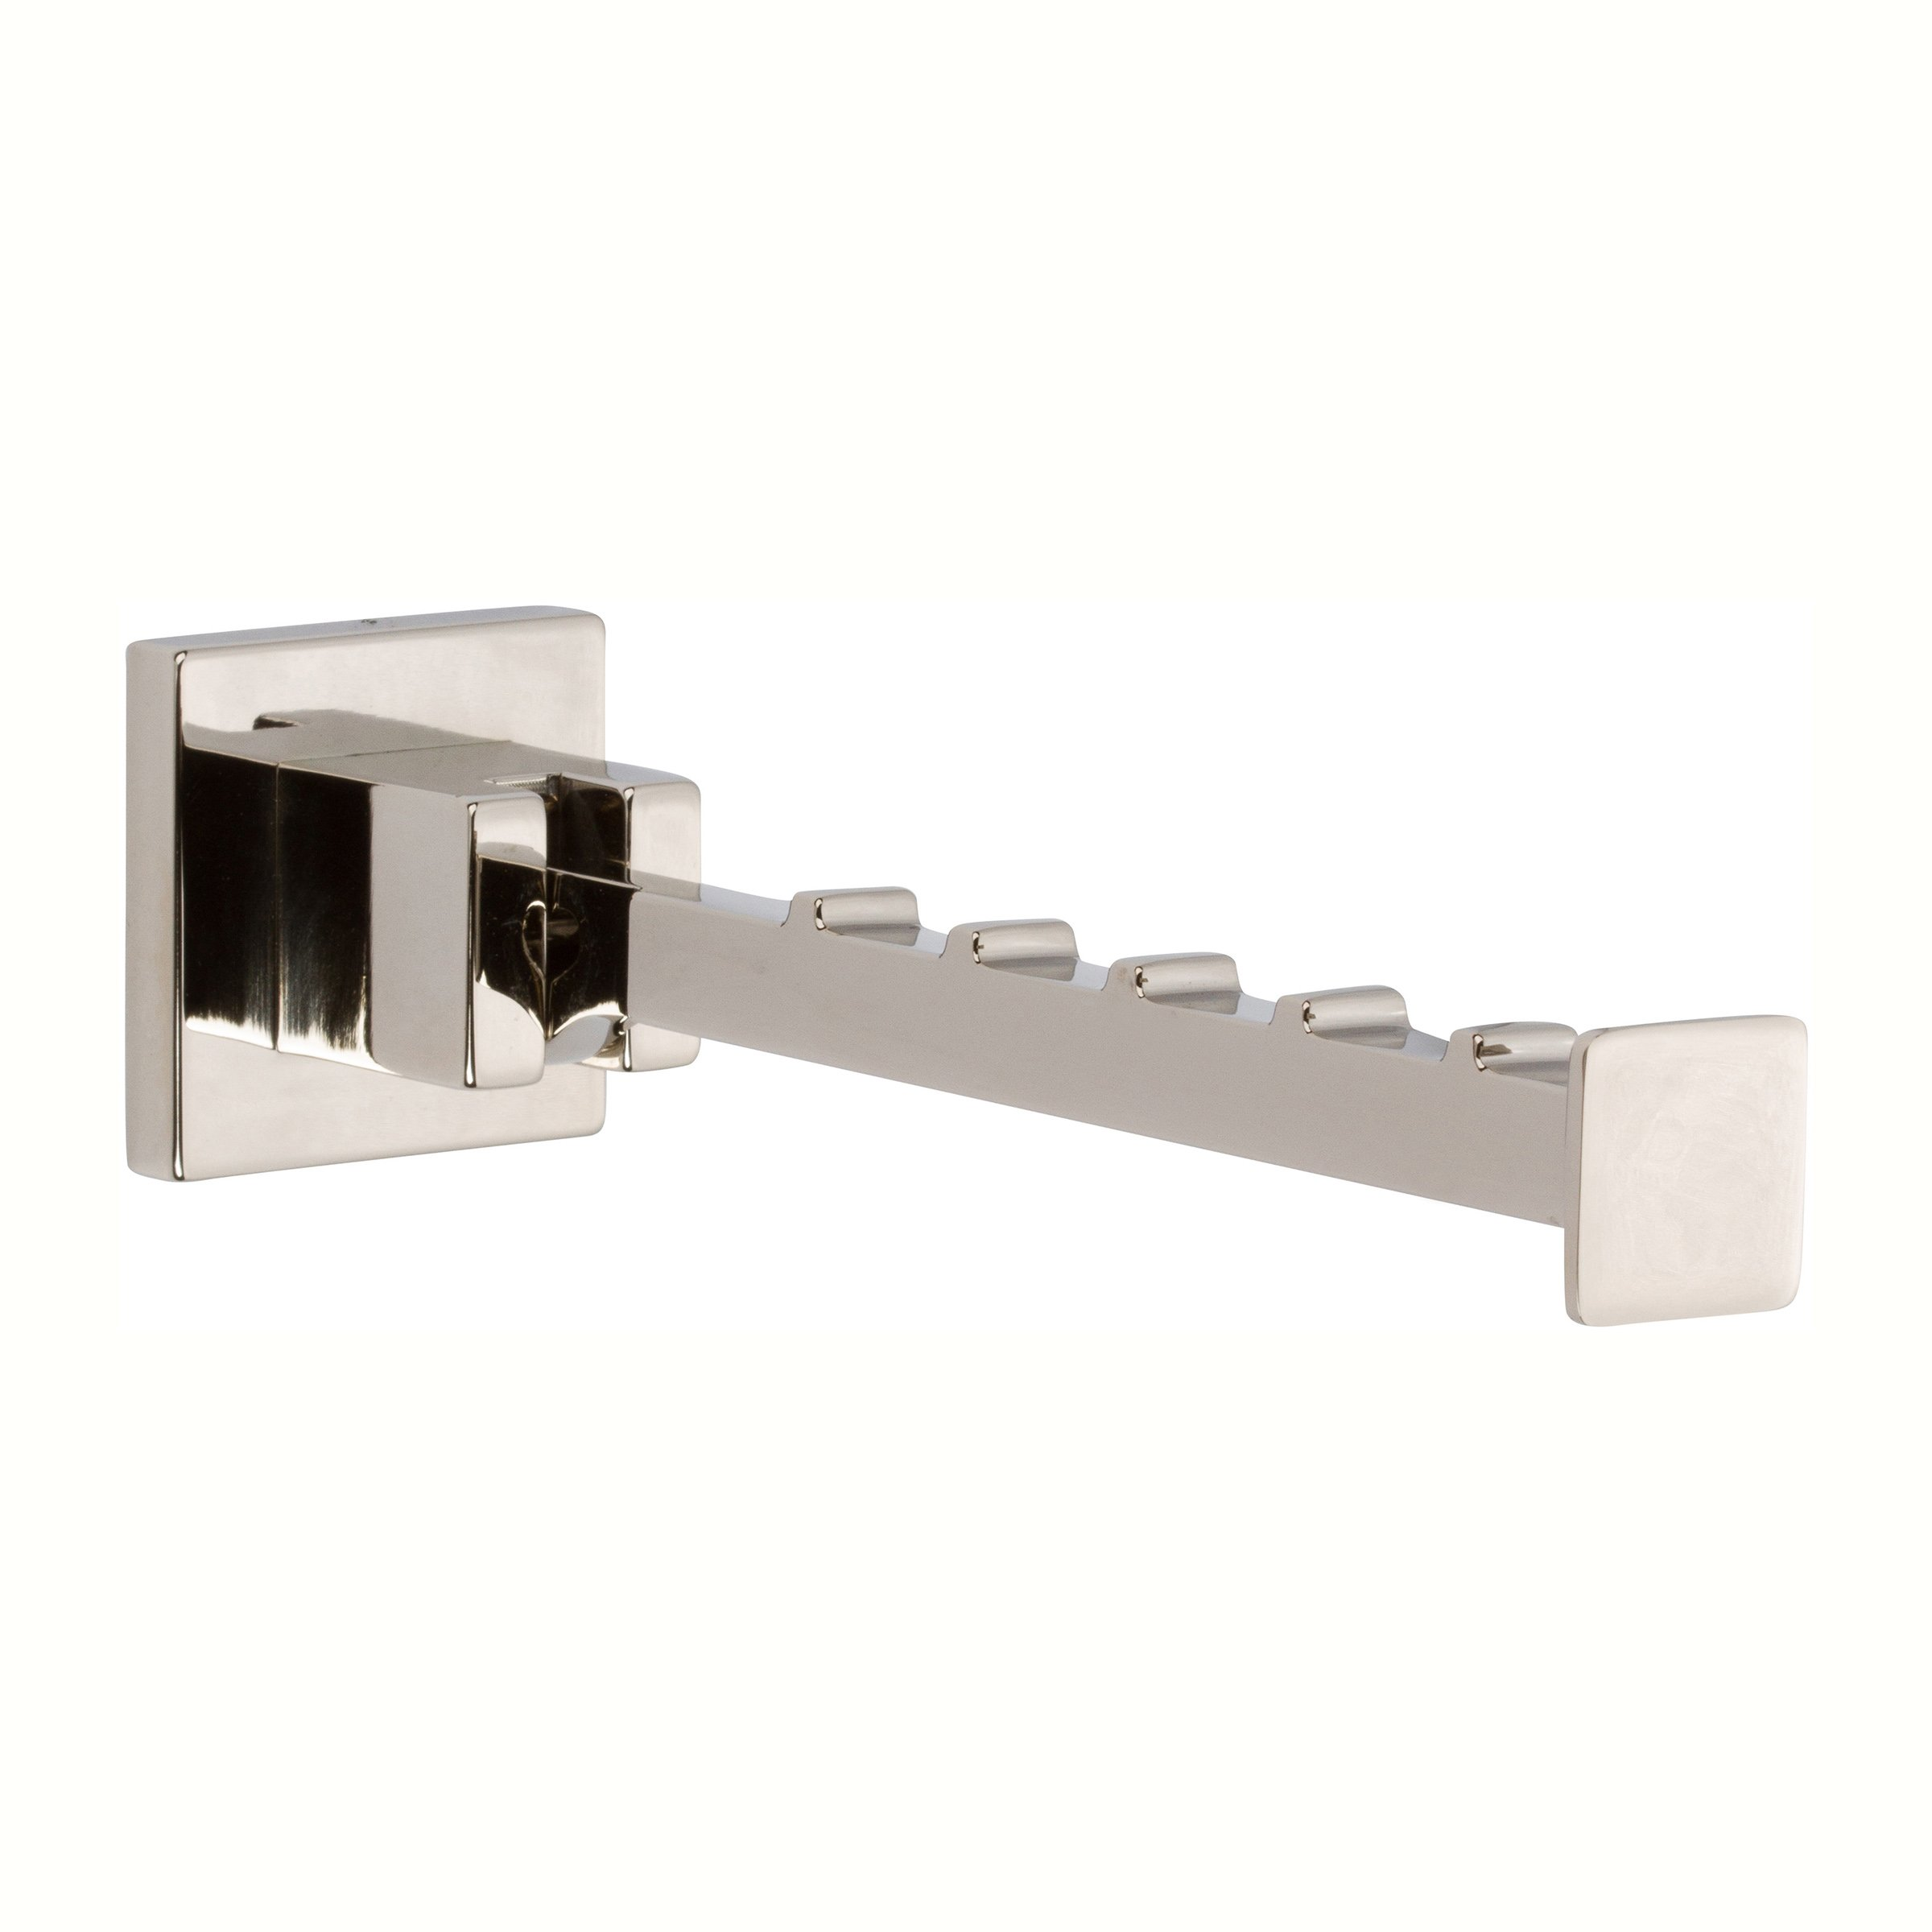 Ginger 5217/PN Lineal Valet Hook 5217, Polished Nickel